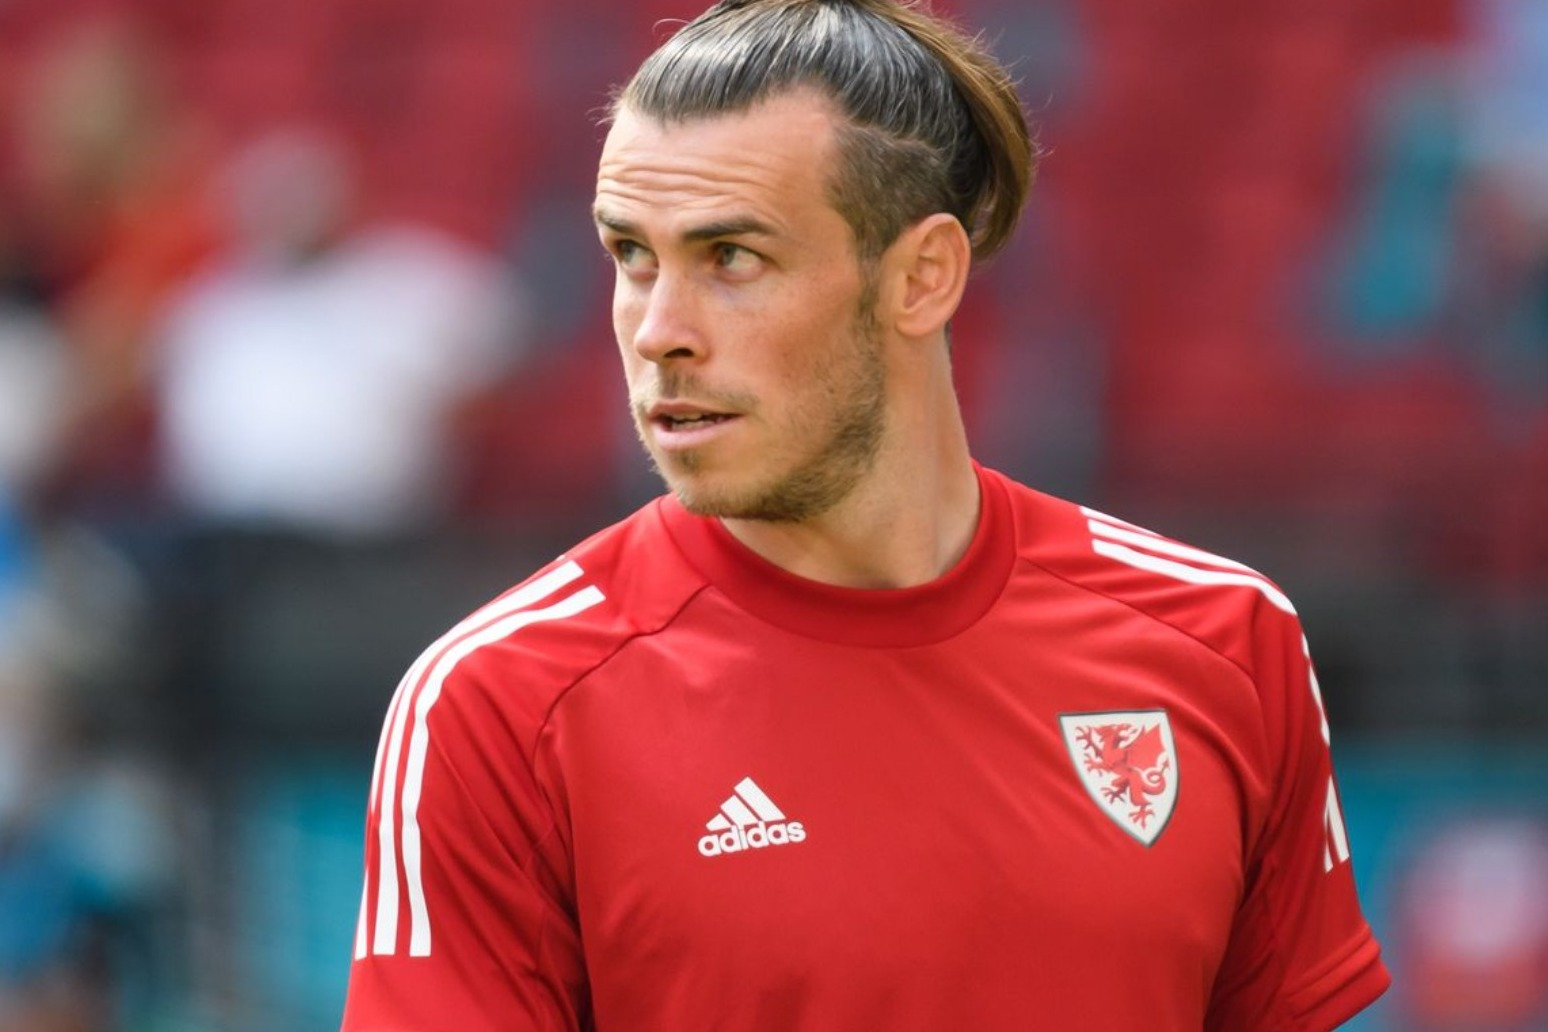 Gareth Bale would lead Wales off pitch in the face of racial abuse if necessary